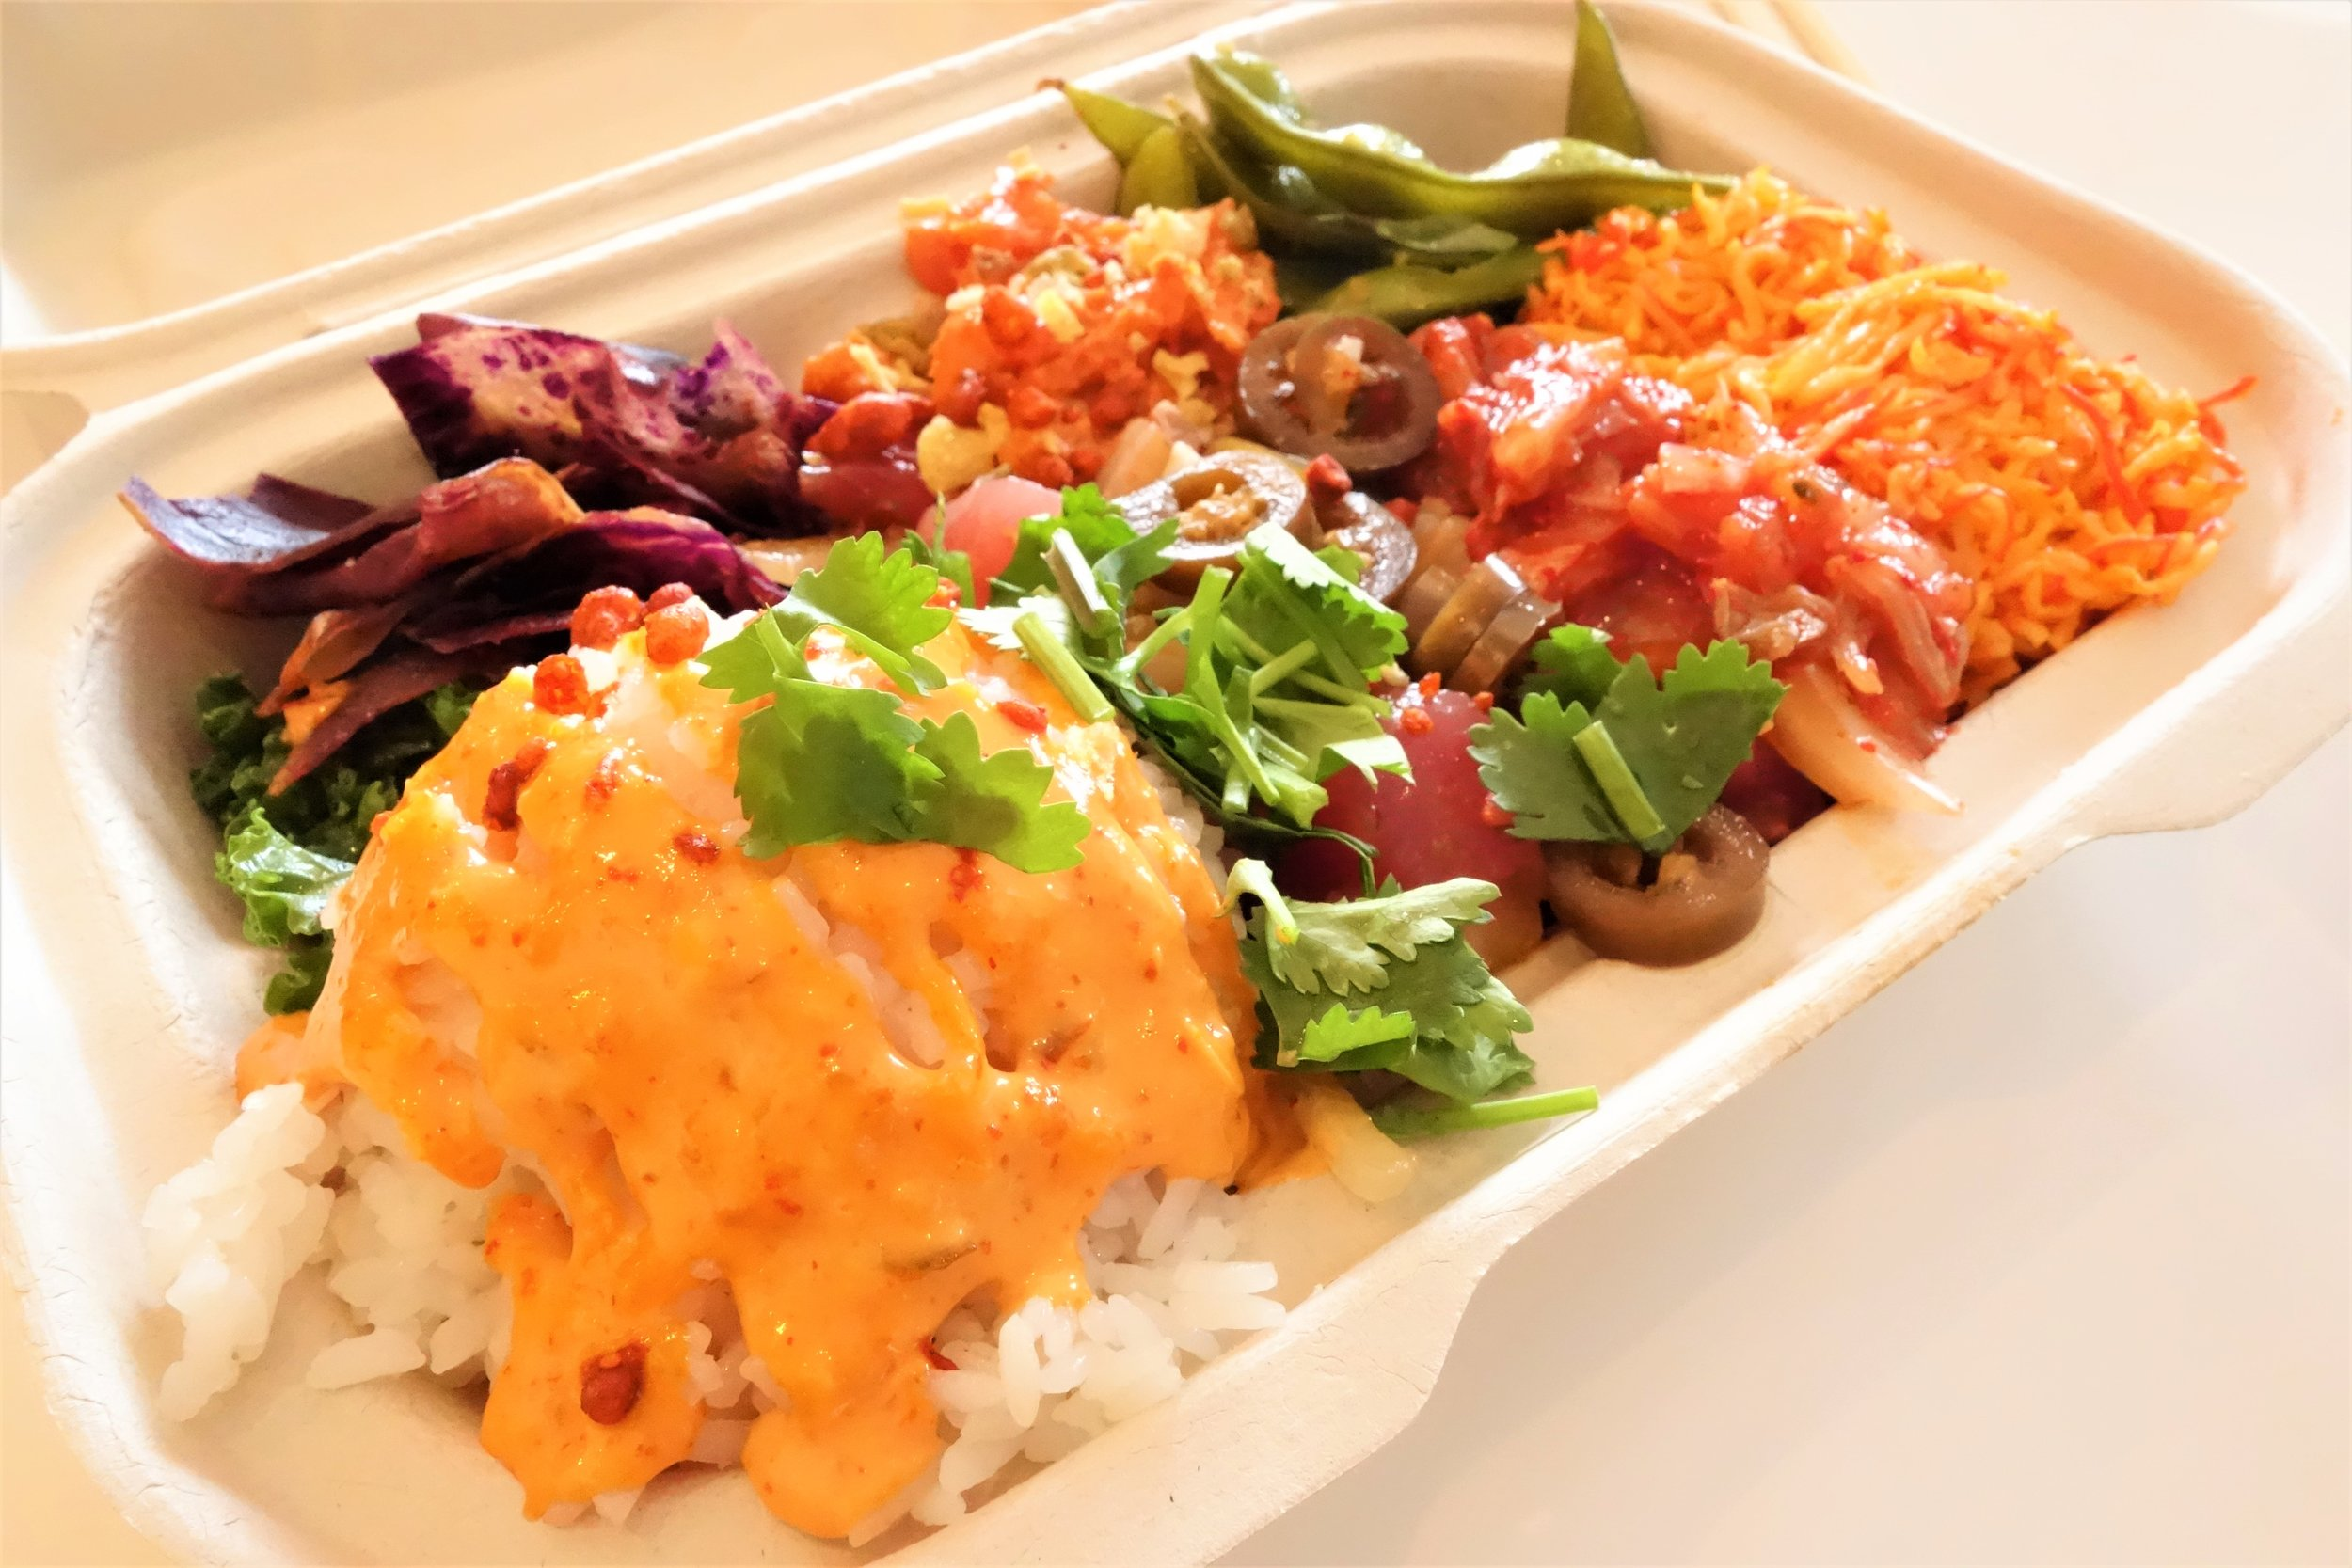 The Volcano Crunch Poke Box. Pokeatery in Walnut Creek, California.